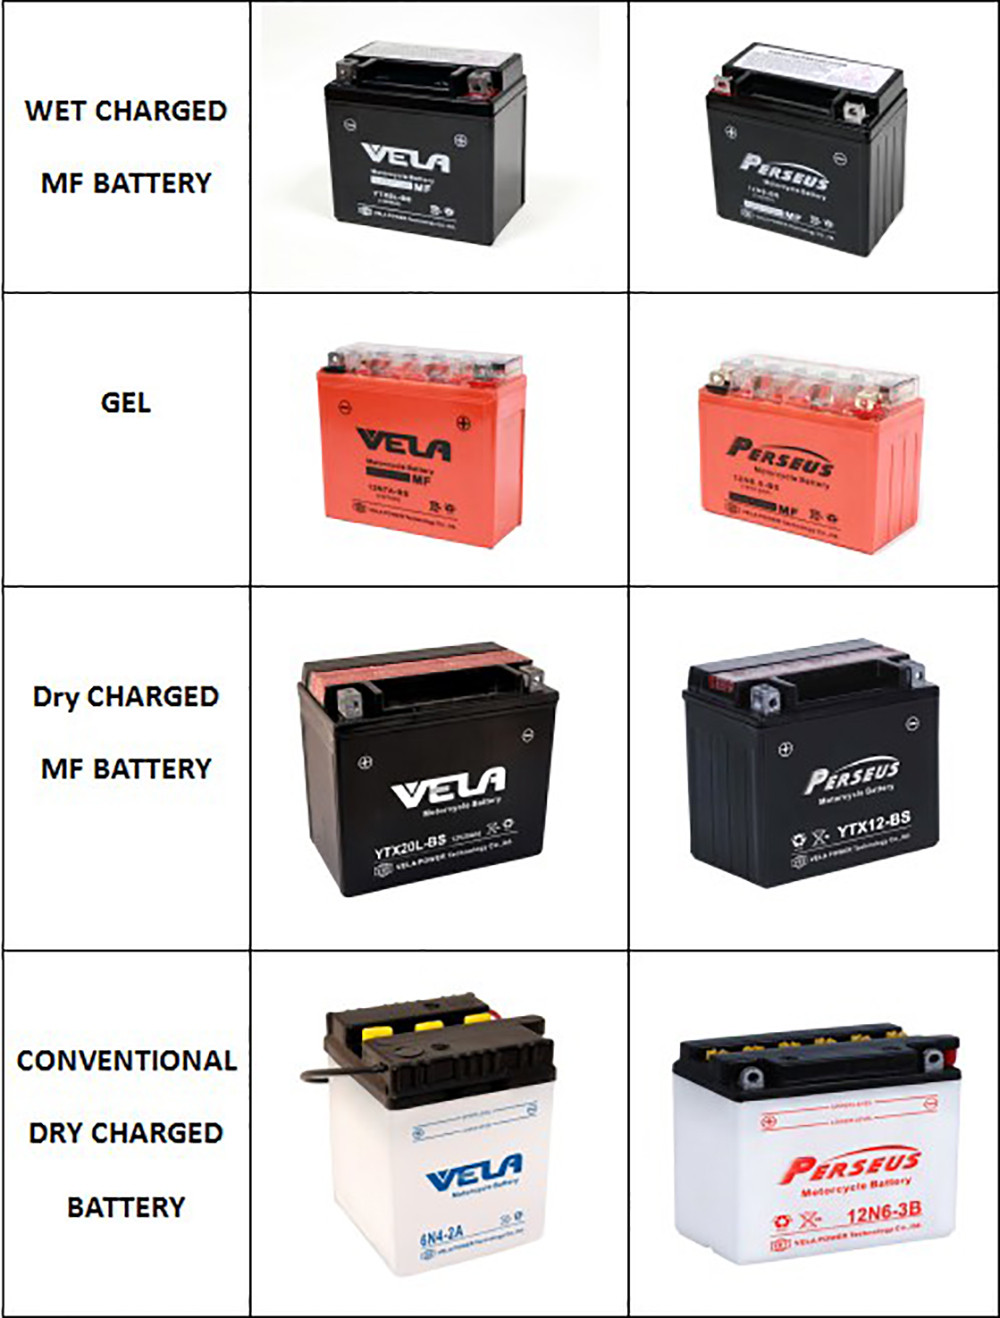 use conveniently motorbike battery price motorbikes-2